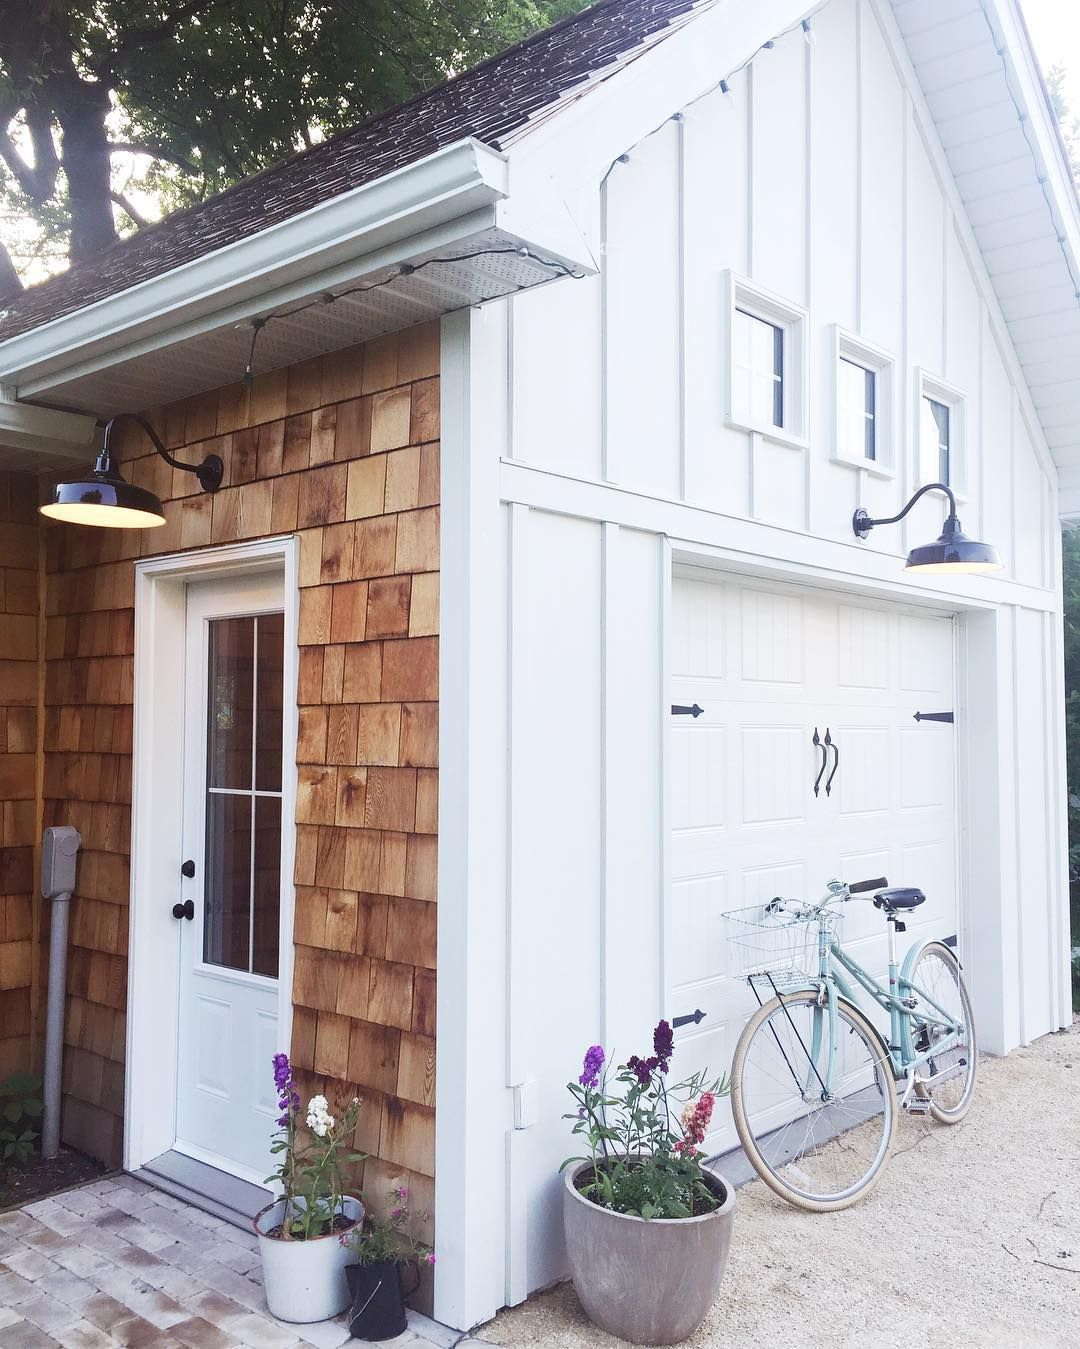 The Studio I Ll Be Here All Week Getting Ready For Alleyways Mkt On Friday It S Going To Be A Par With Images Cedar Shingle Siding Shingle Exterior Wood Shingle Siding